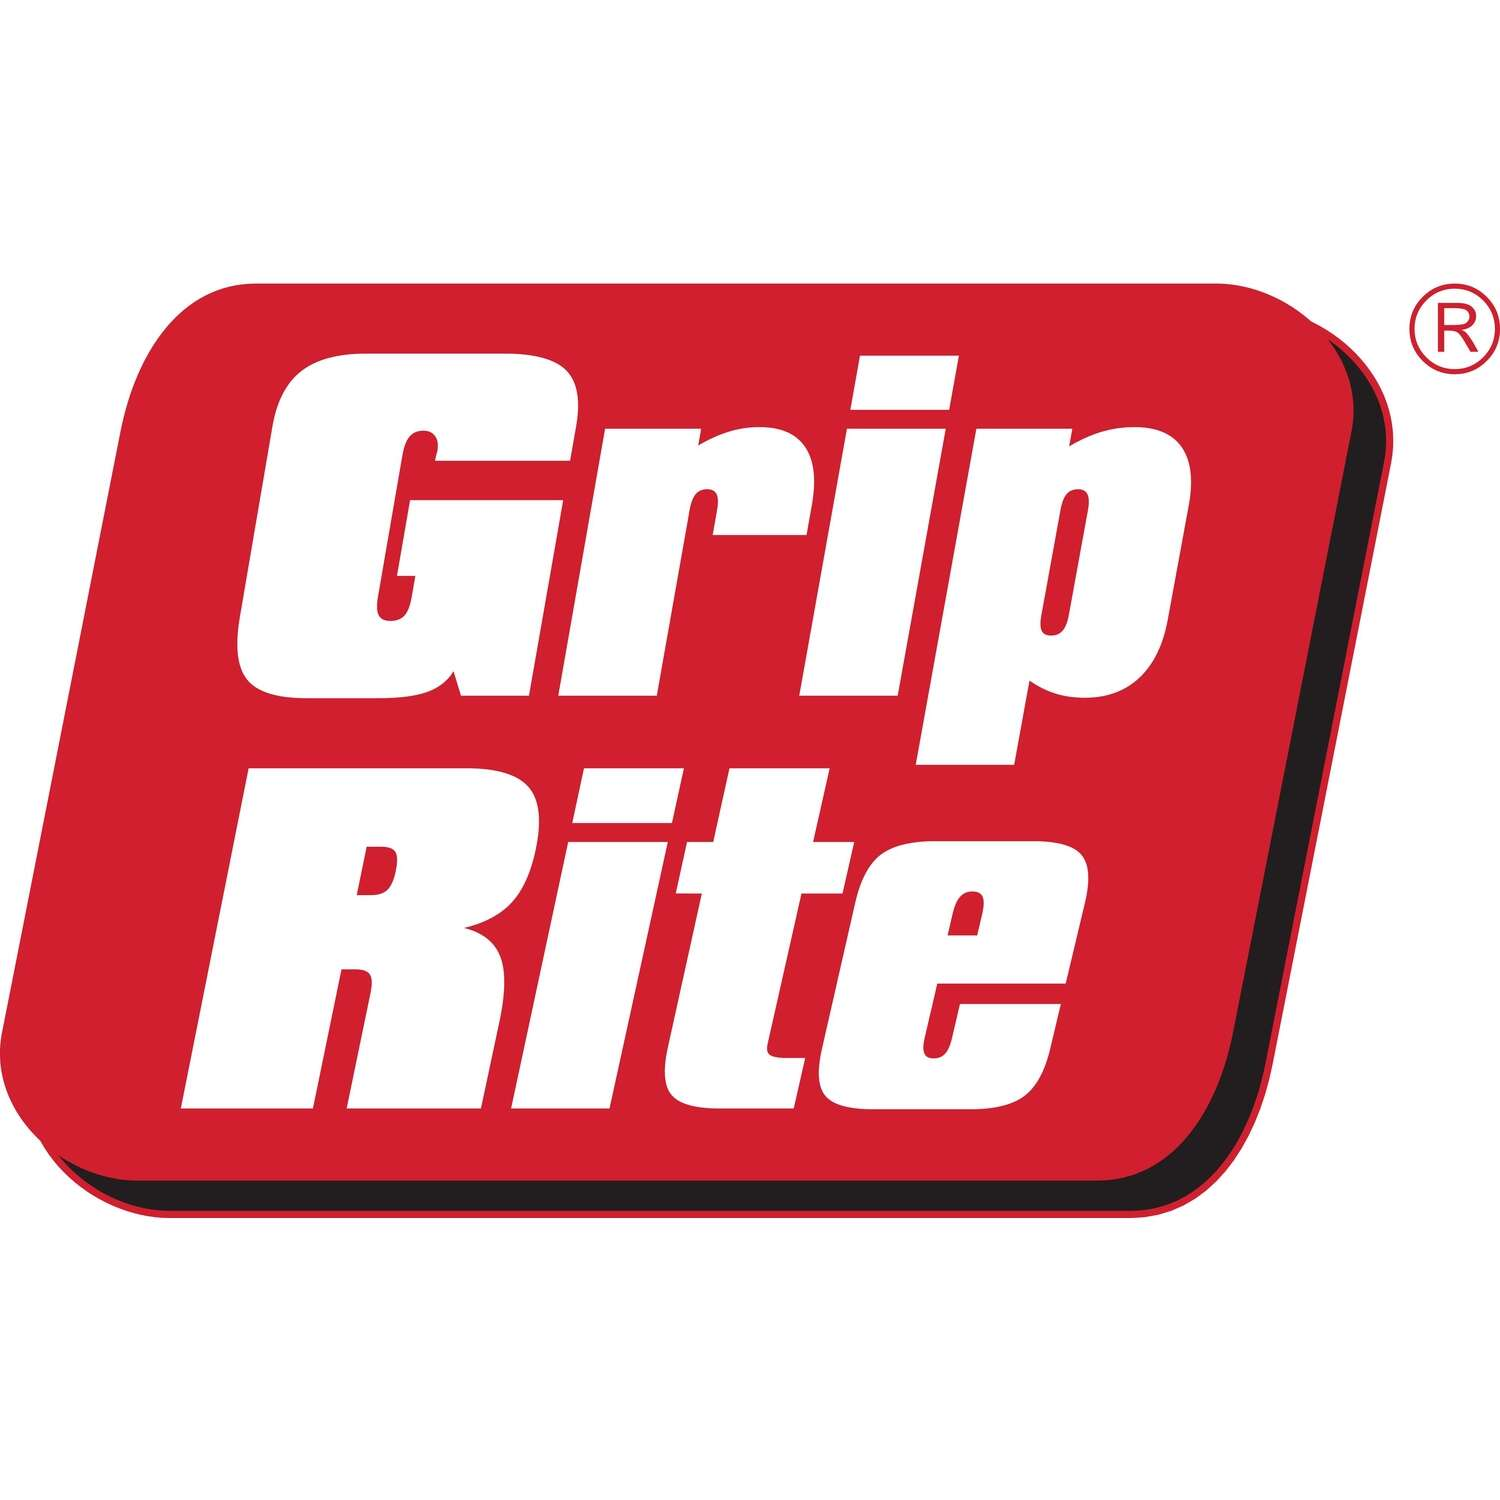 Grip-Rite  21 deg. 11-1/2 Ga. Smooth Shank  Angled Strip  Framing Nails  2-3/8 in. L x 0.11 in. Dia.